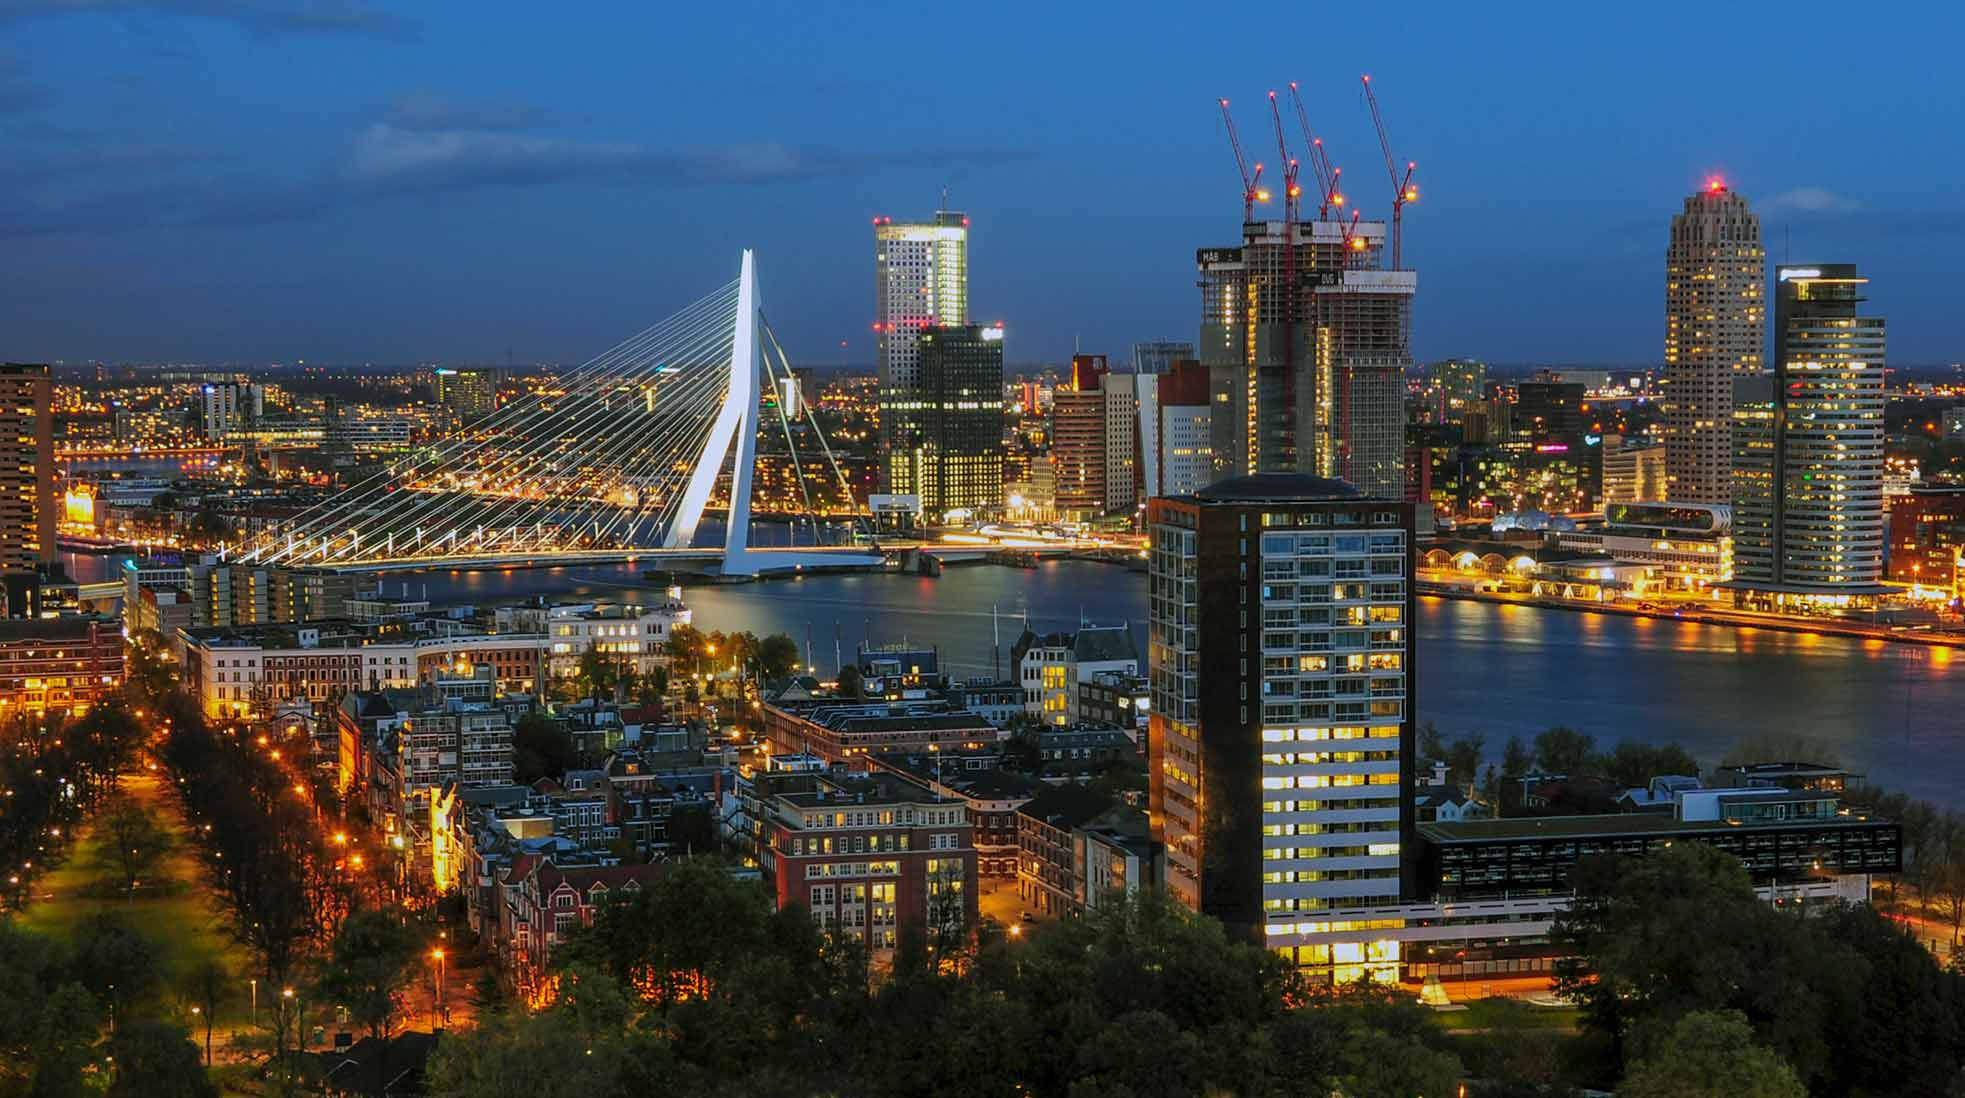 Centrala Rotterdam med Erasmusbrug sett från Euromast. Foto: Mlefter via Wikimedia Commons (CC BY-SA 3.0)